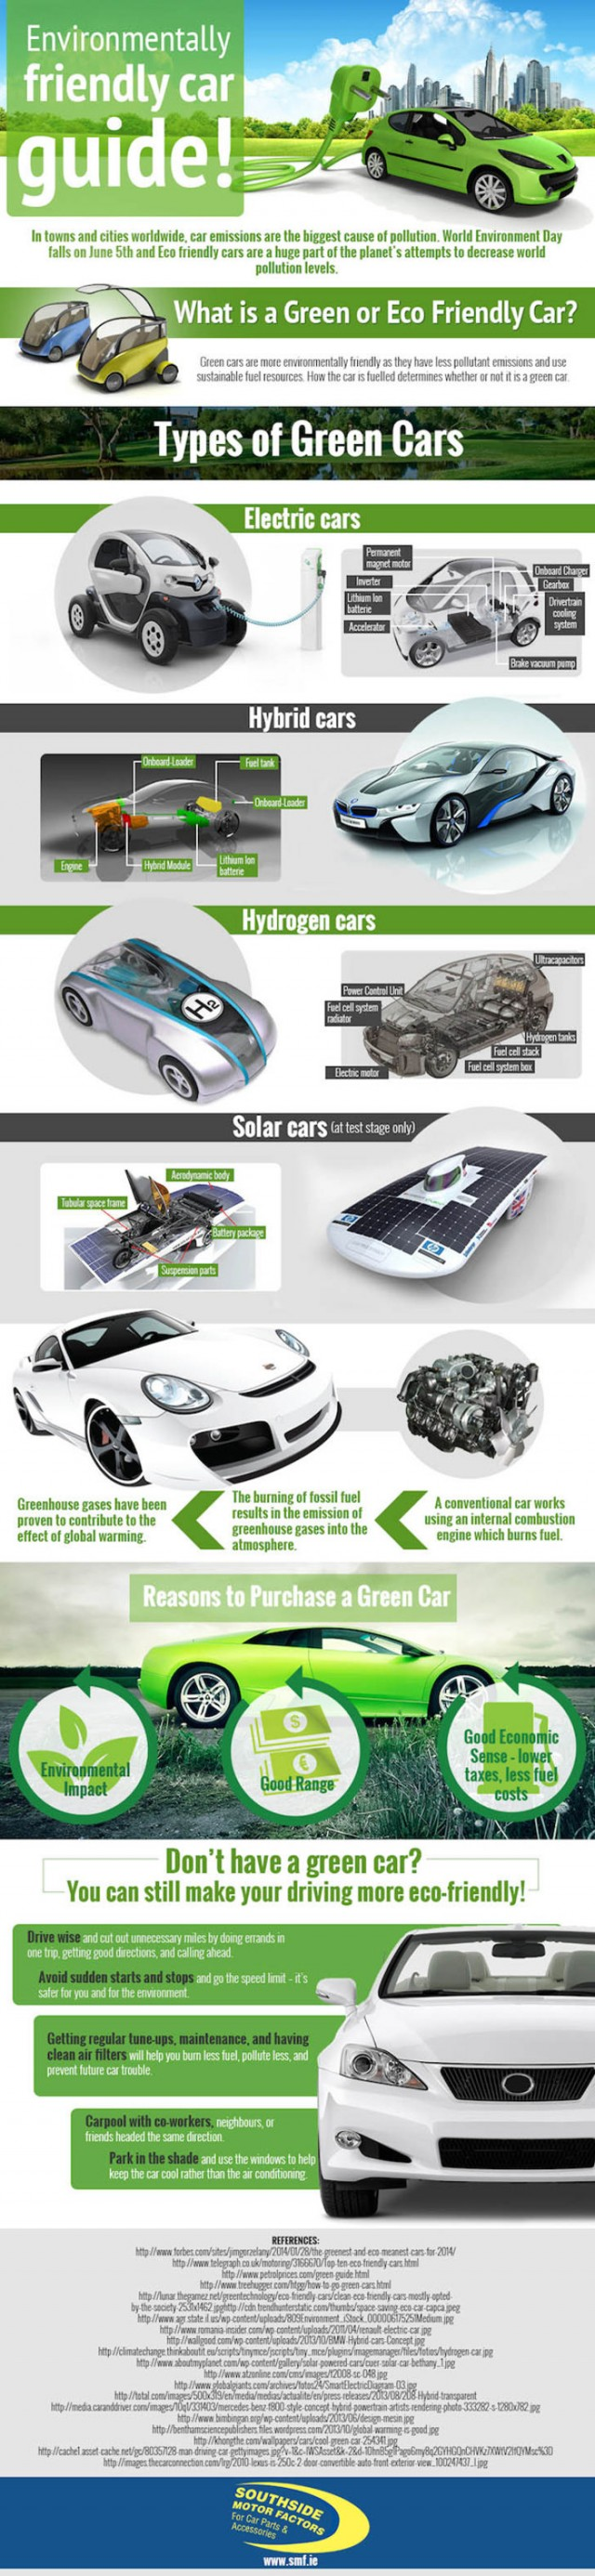 Environmentally-Friendly Cars infographic